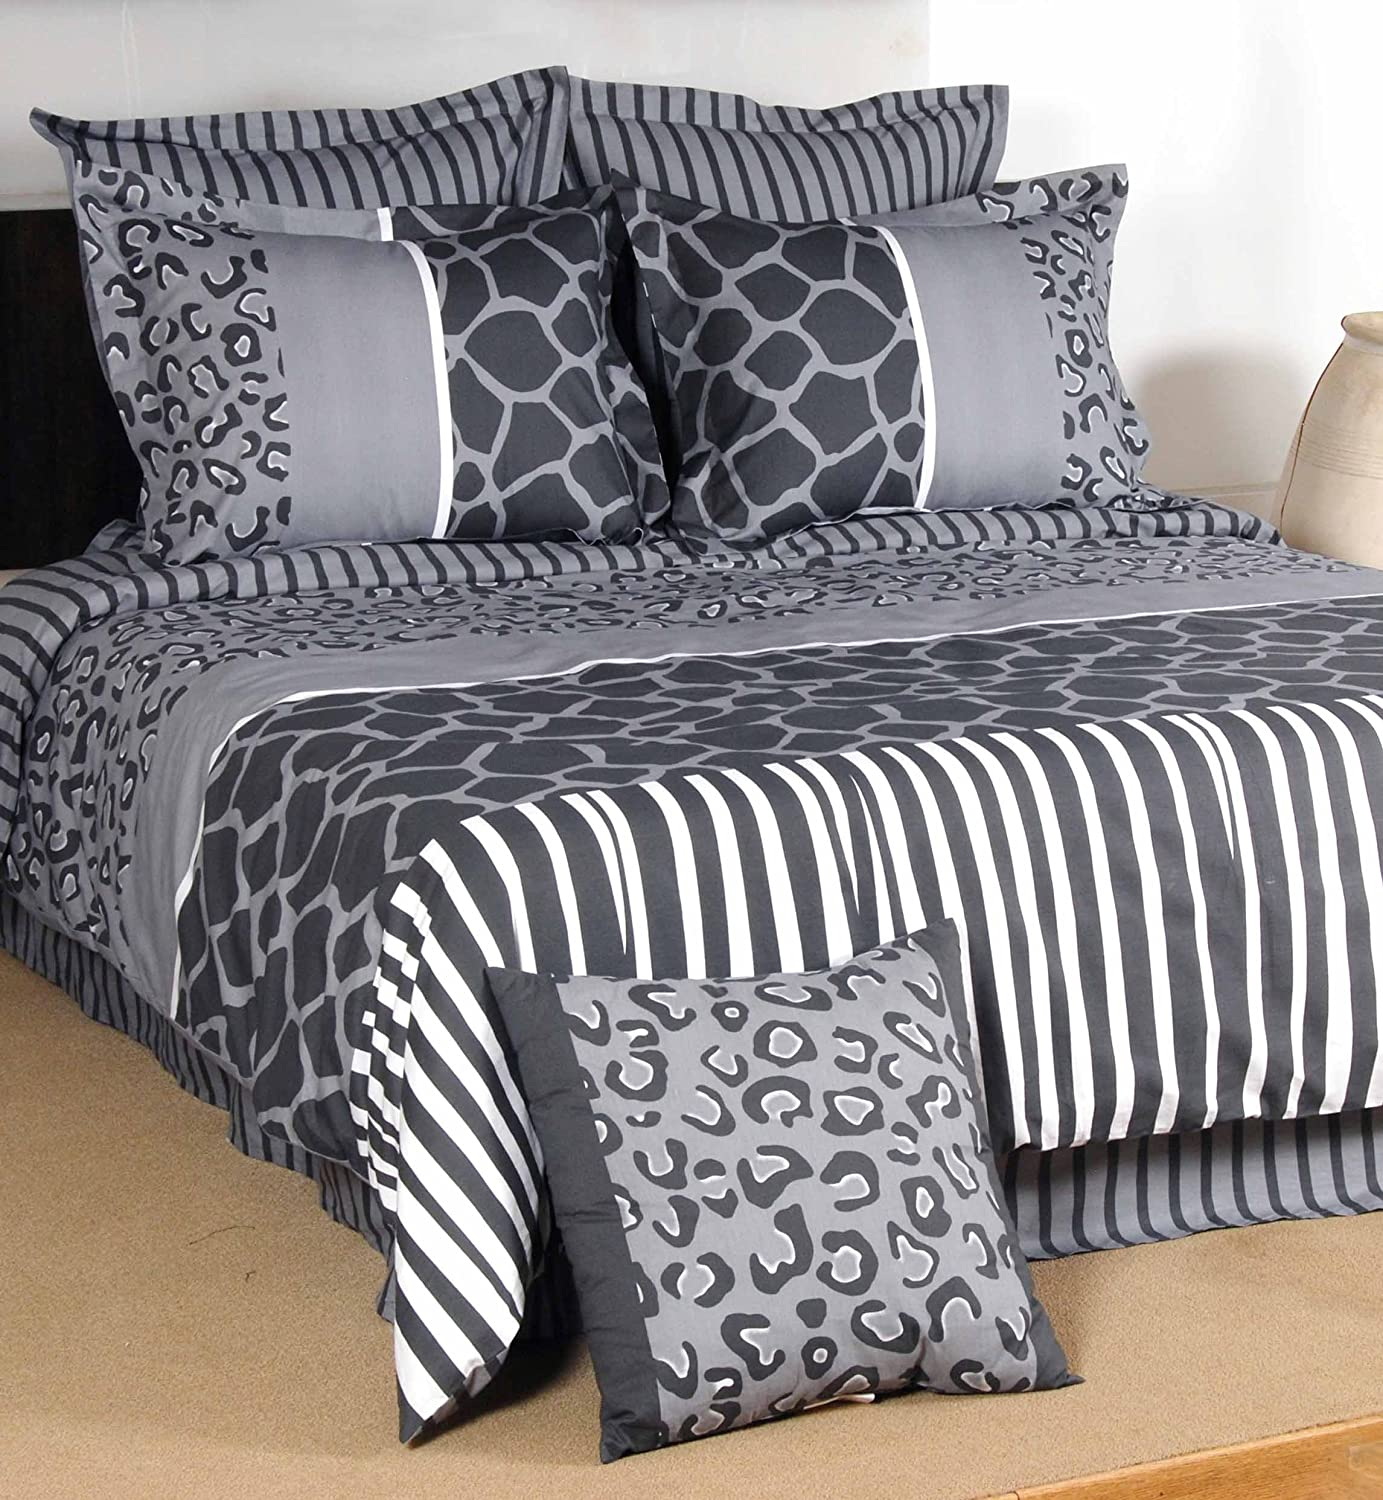 Cheap zebra print bedroom sets - Textrade African Safari 7 Piece Duvet Cover Set King Grey